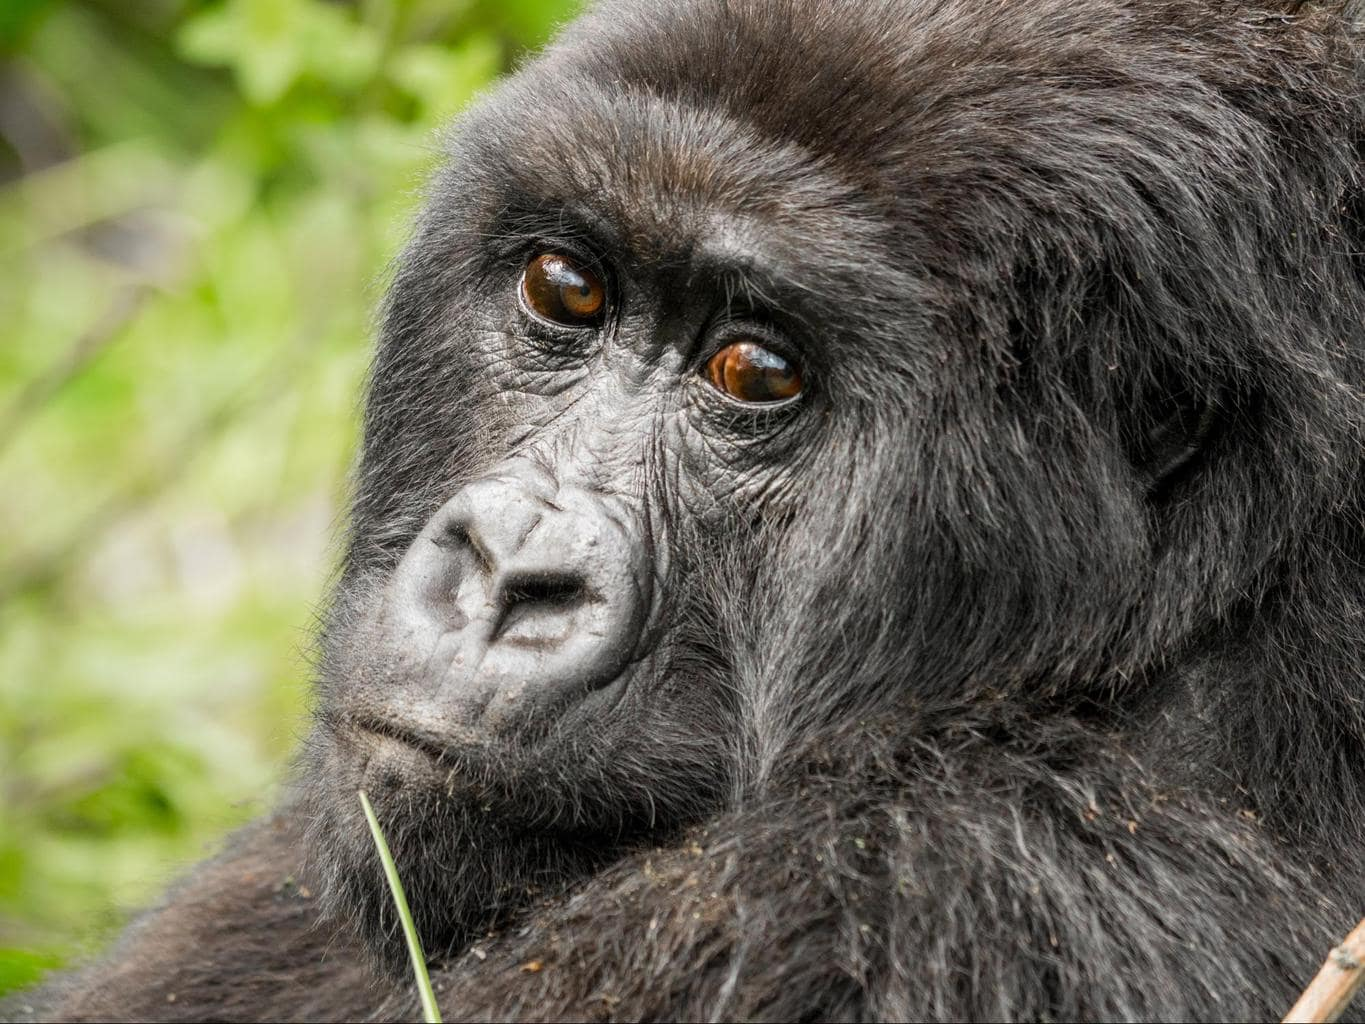 A female gorilla